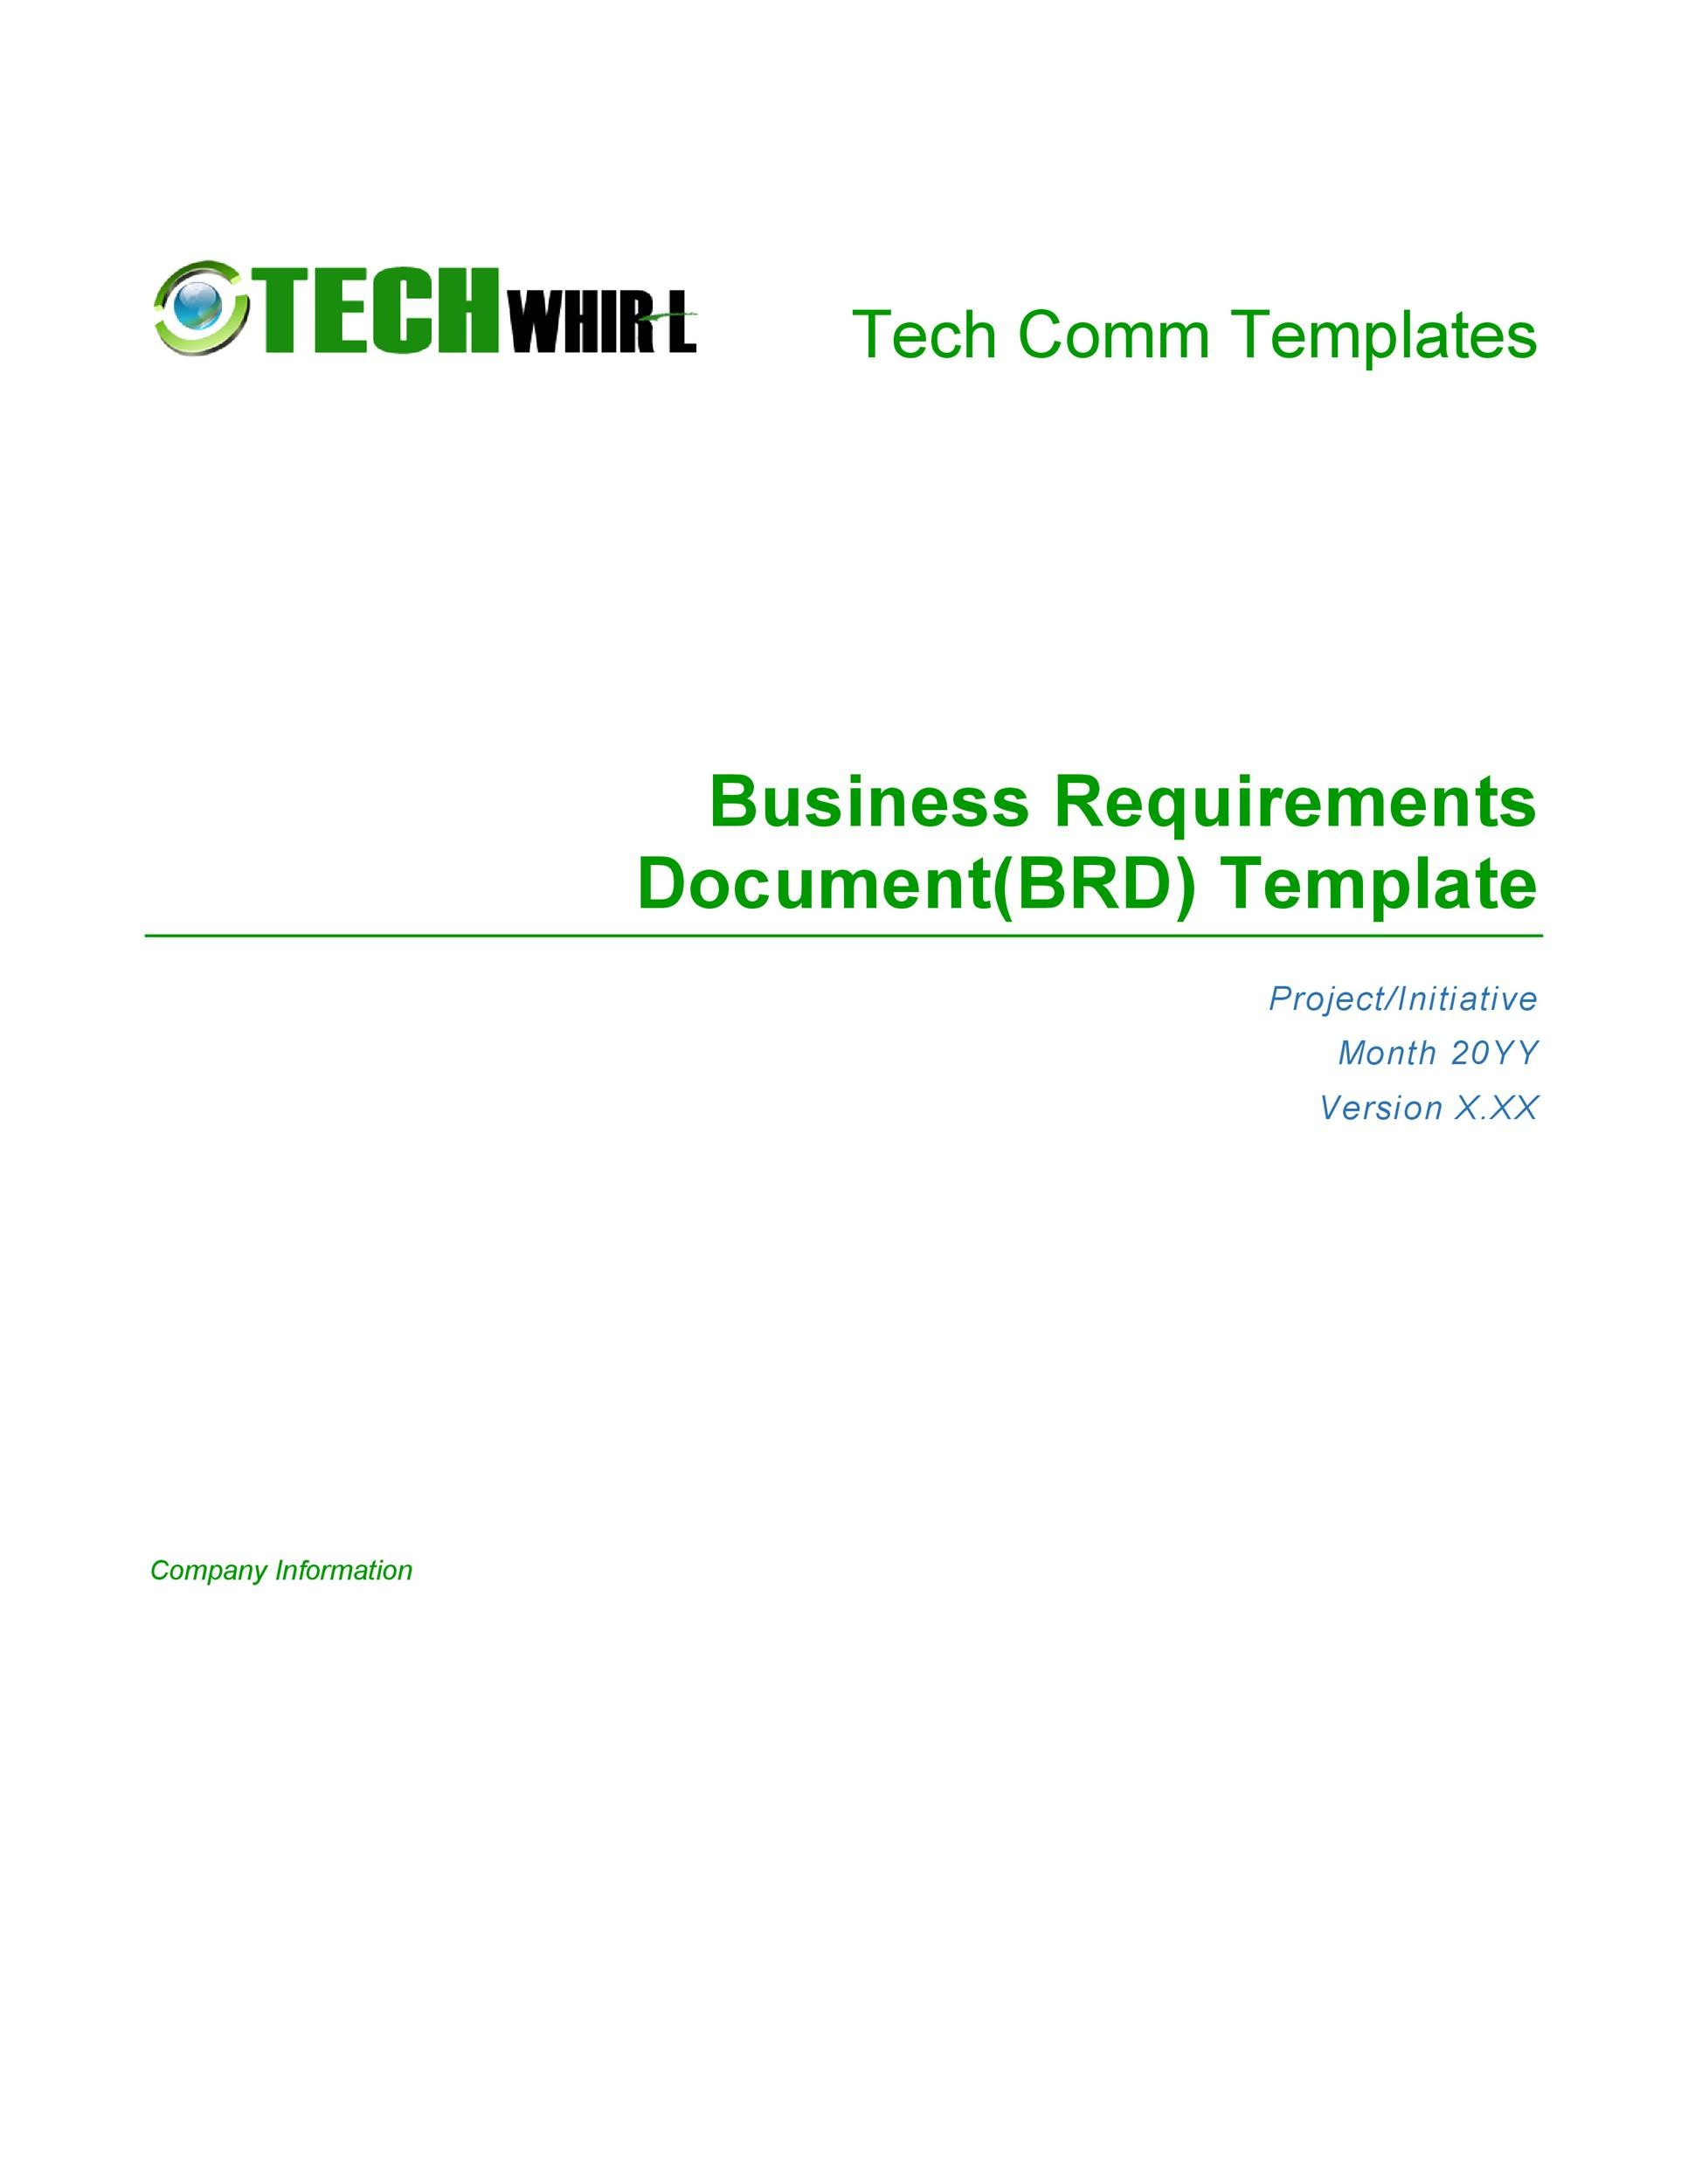 Free business requirements document template 07